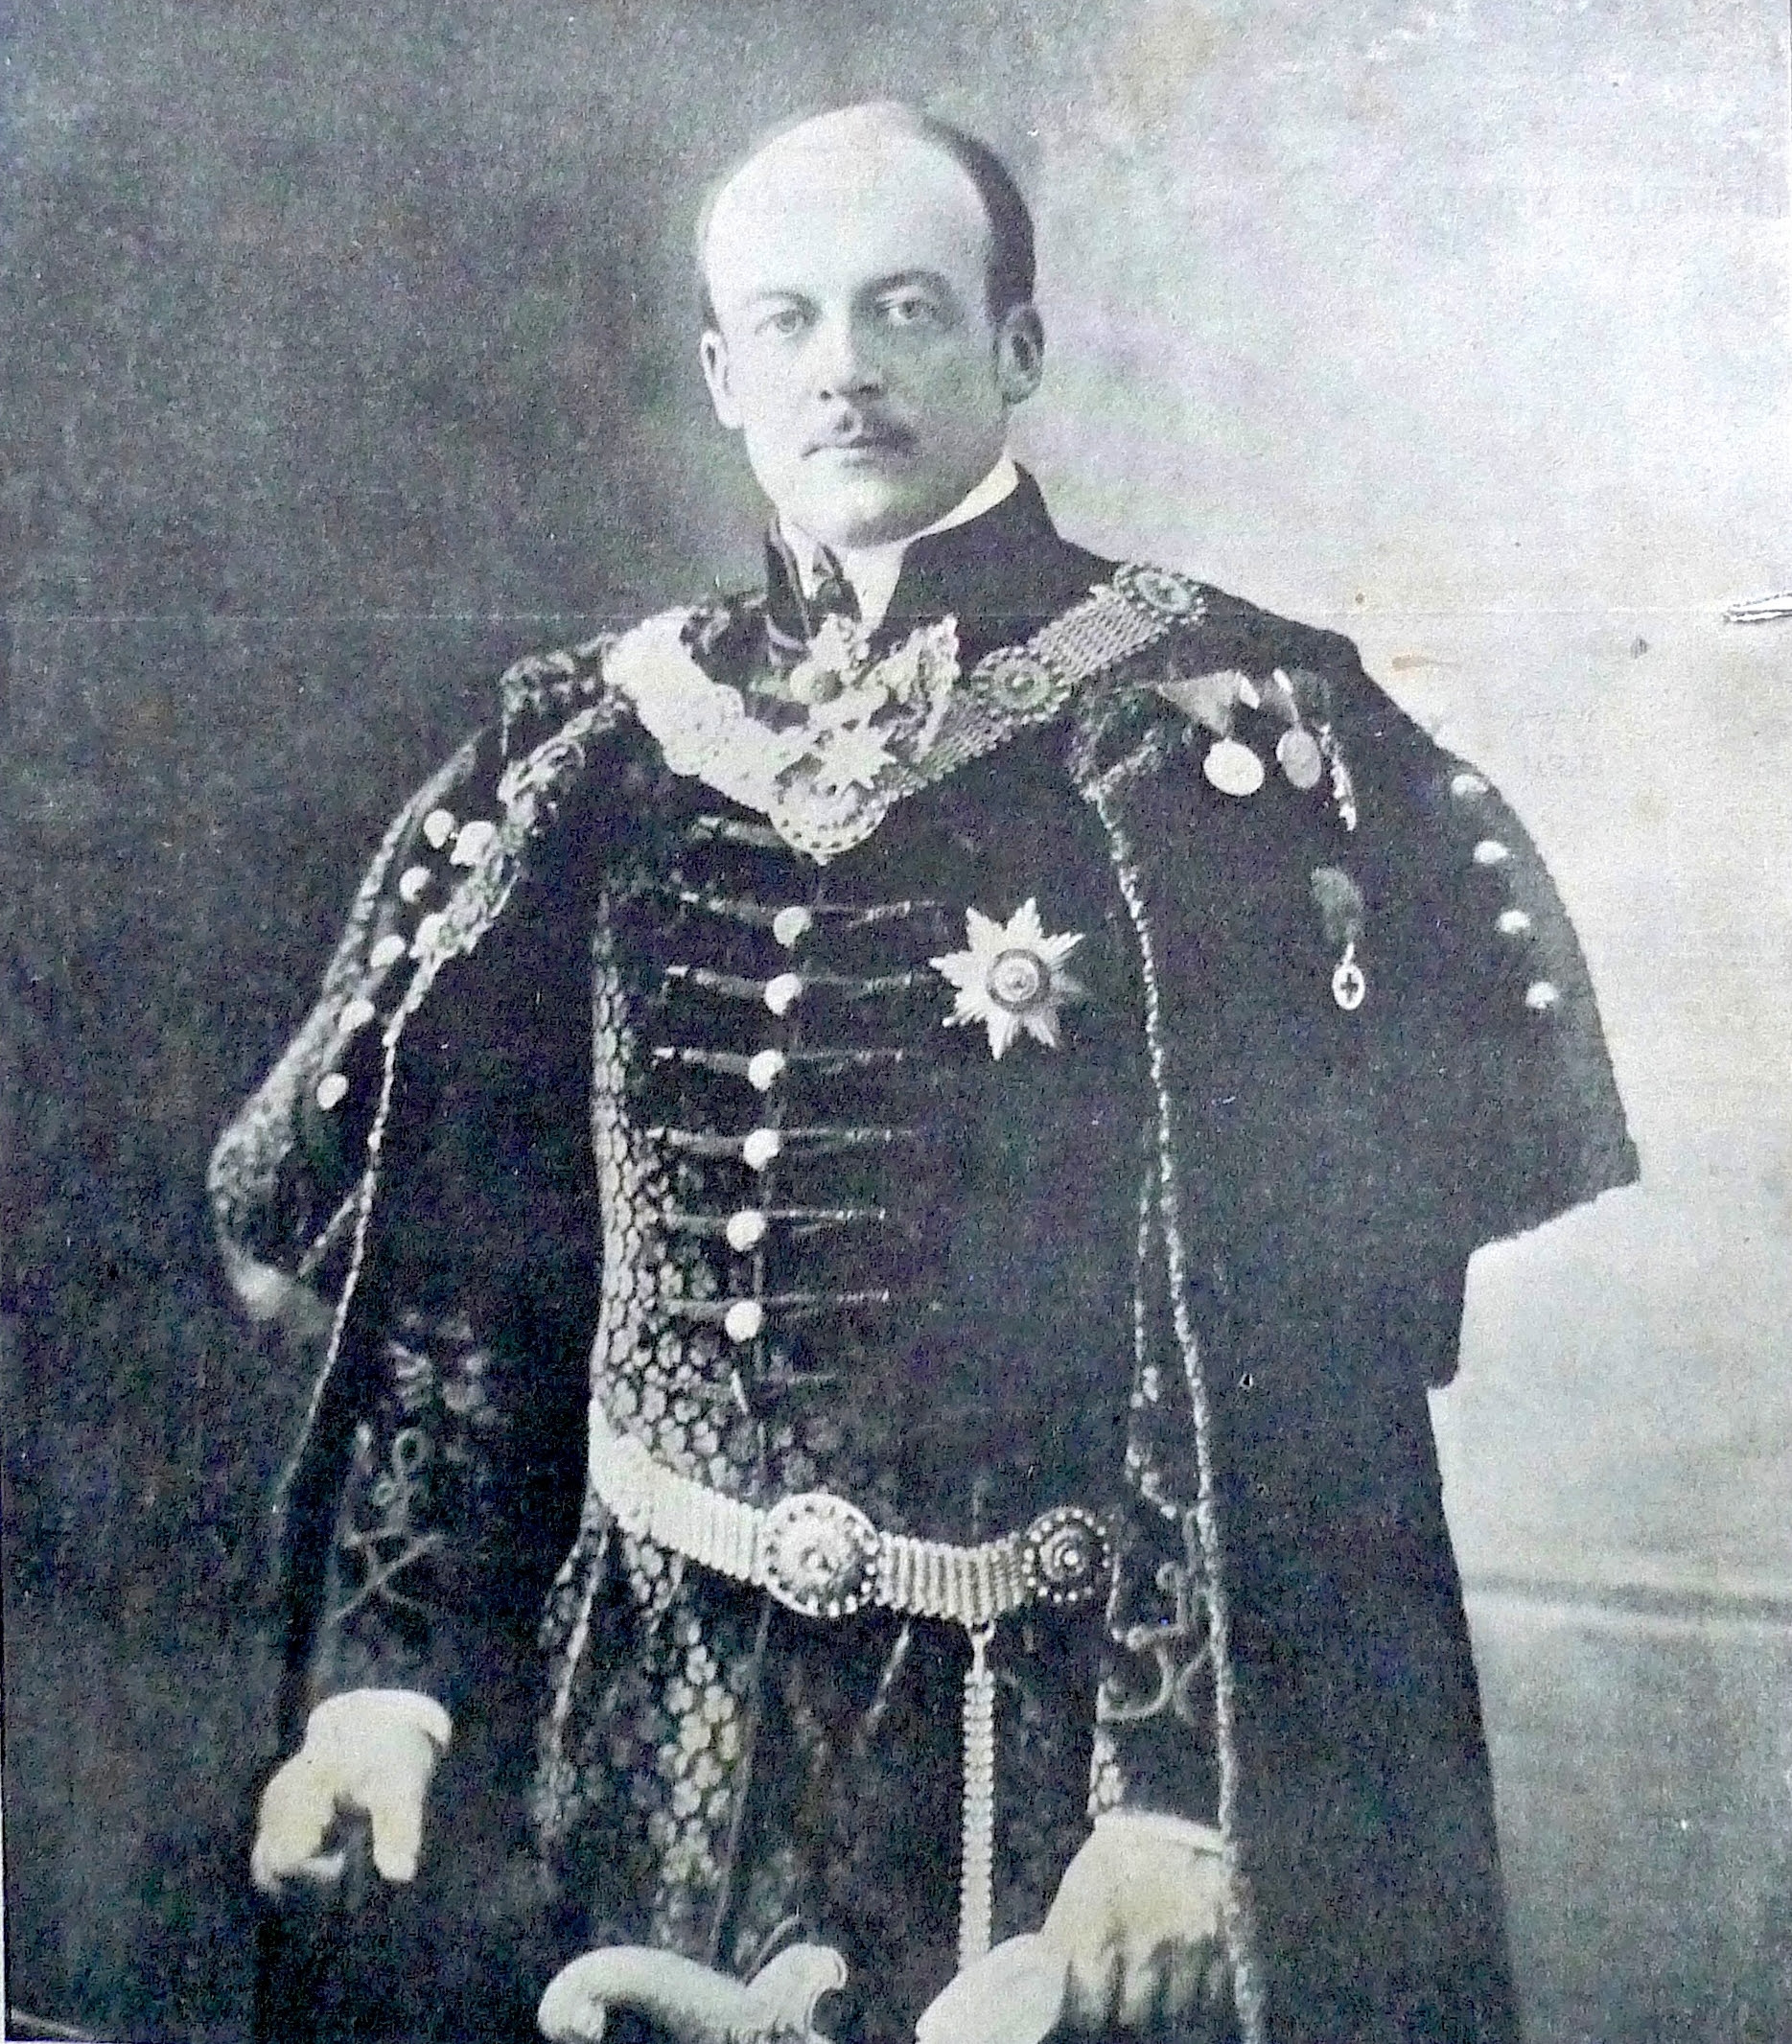 Count Leopold Berchtold